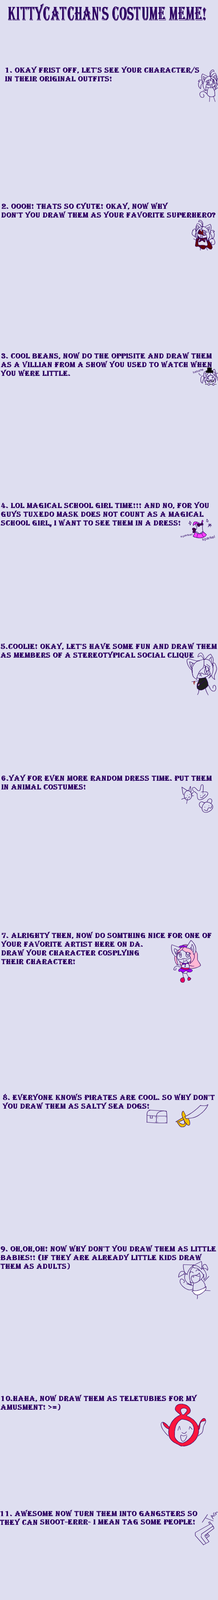 Costume_Meme_by_kittycatchan.png